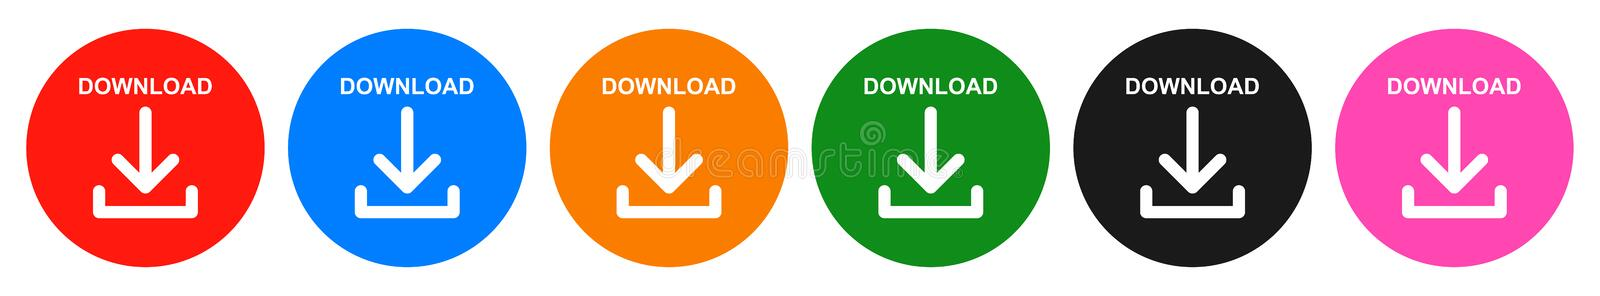 Vector download round button six color icon royalty free illustration